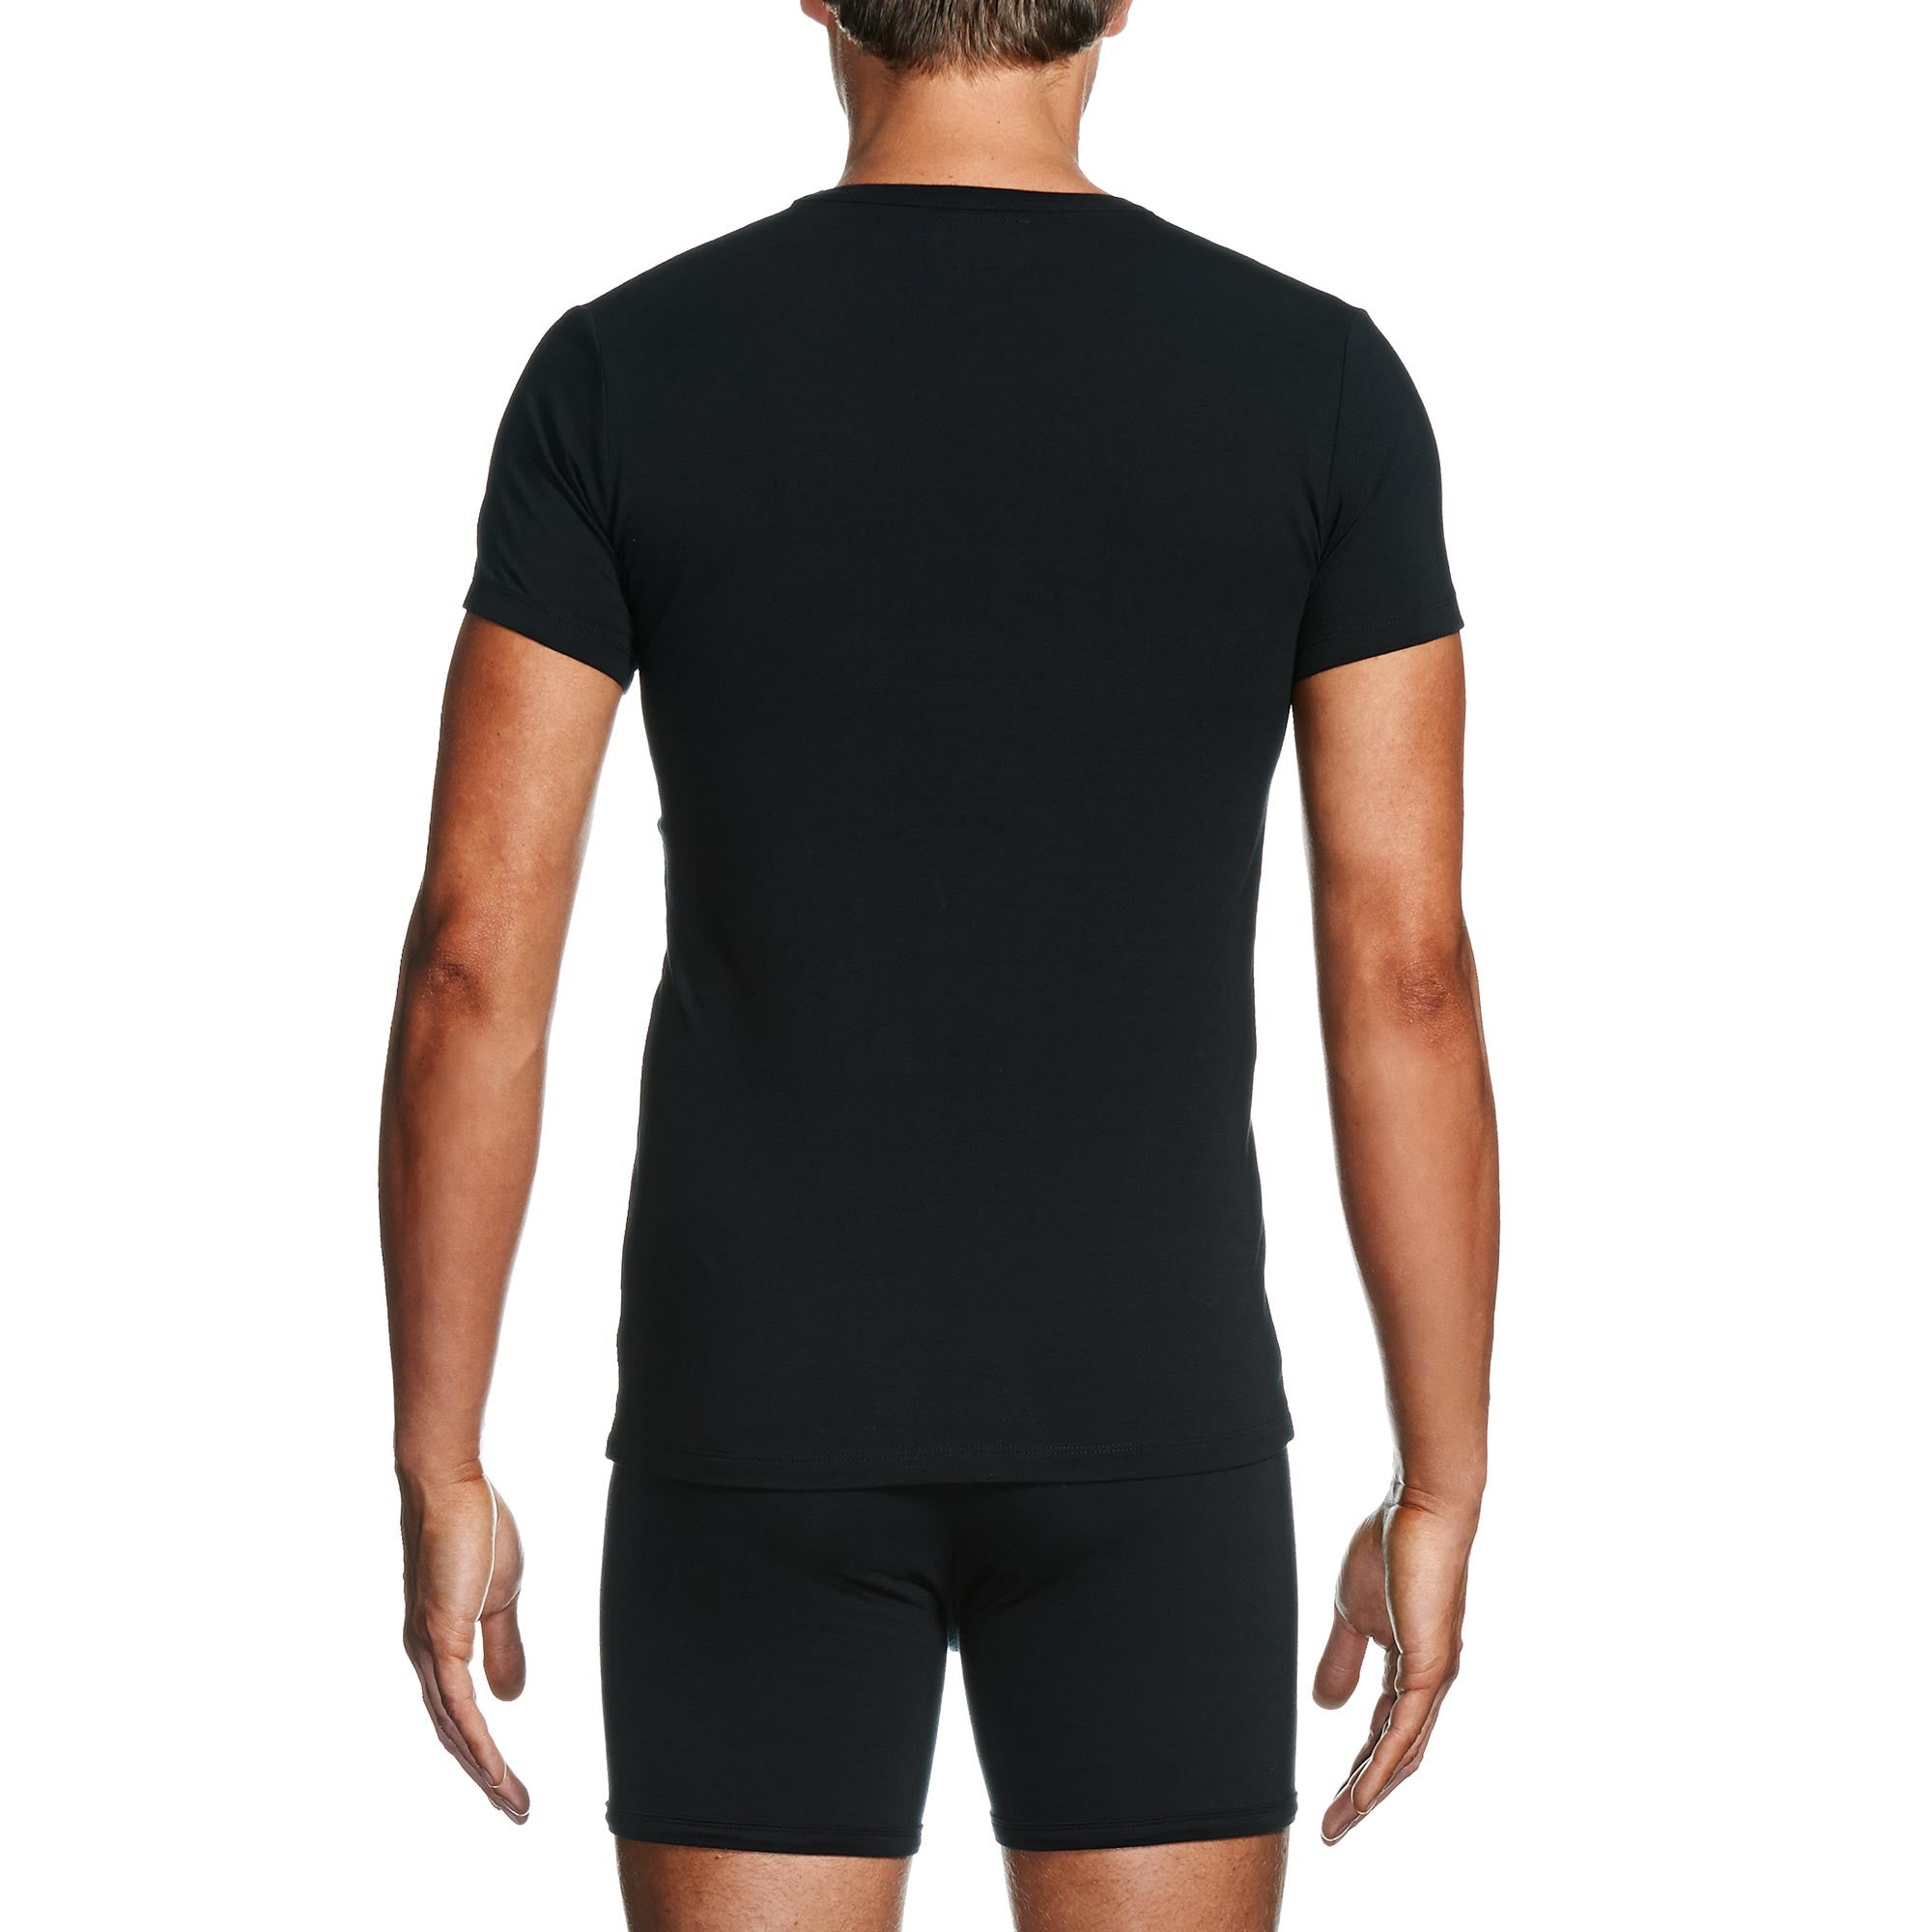 Black t shirts v neck -  Package Men S V Neck T Shirt In Black Back